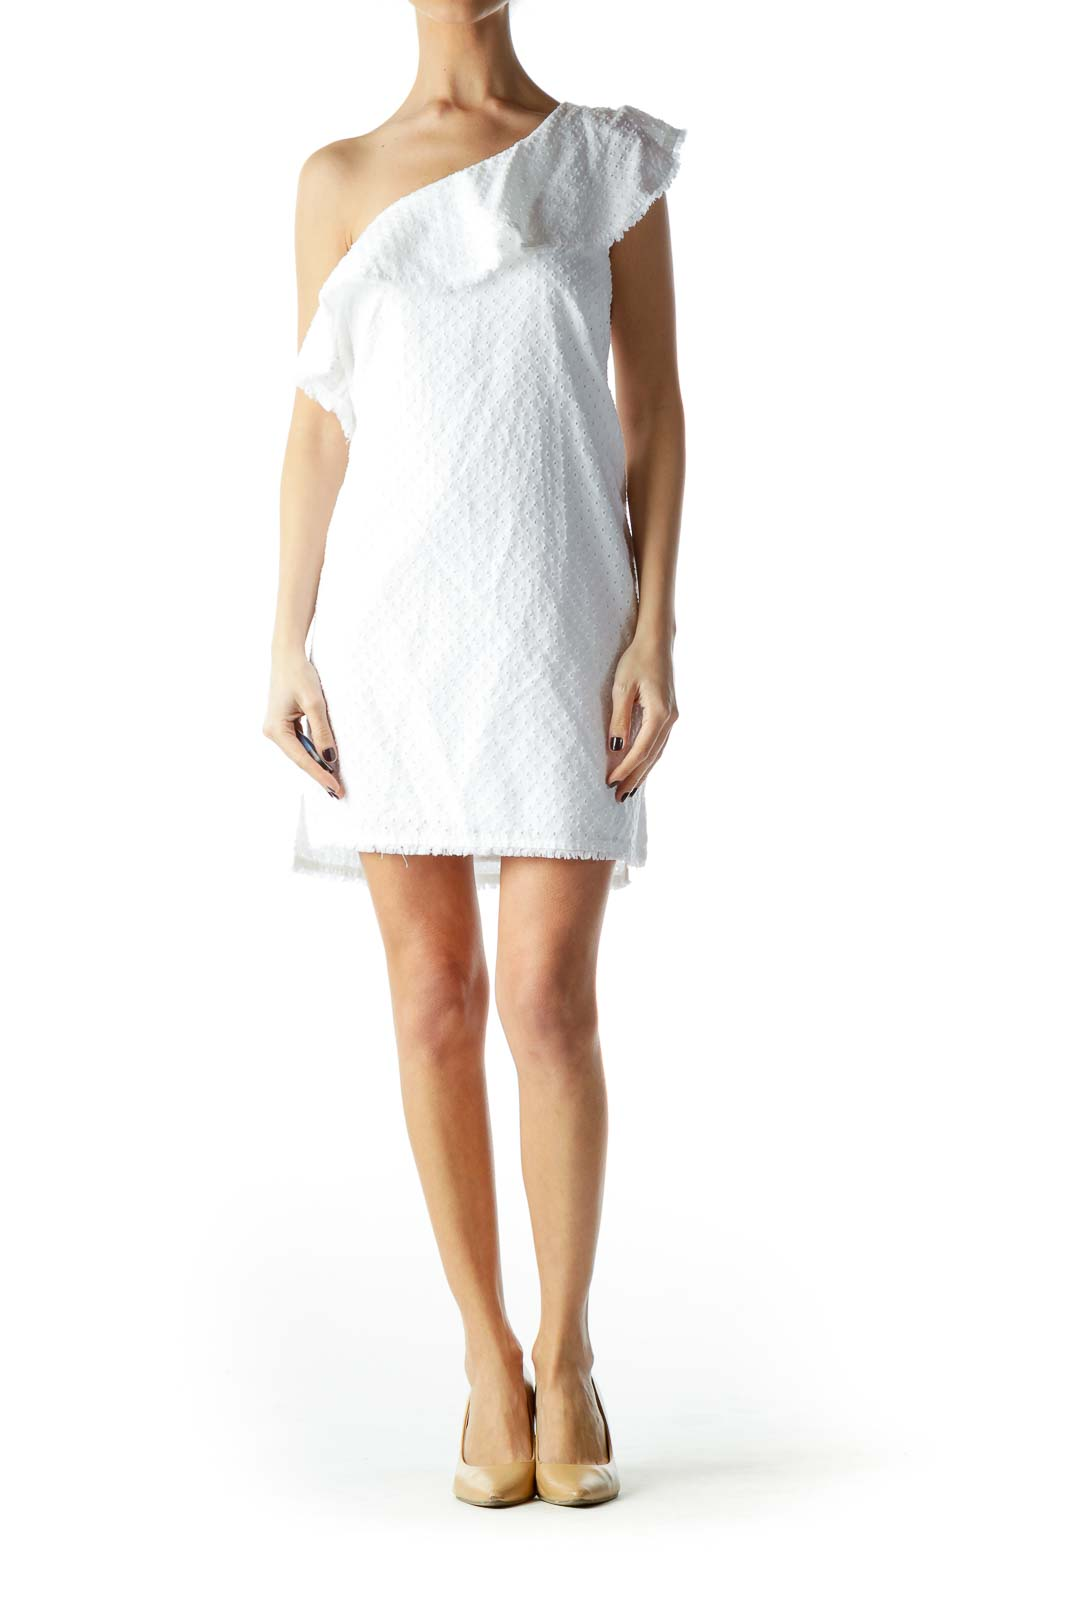 White One-Shoulder Knit Dress